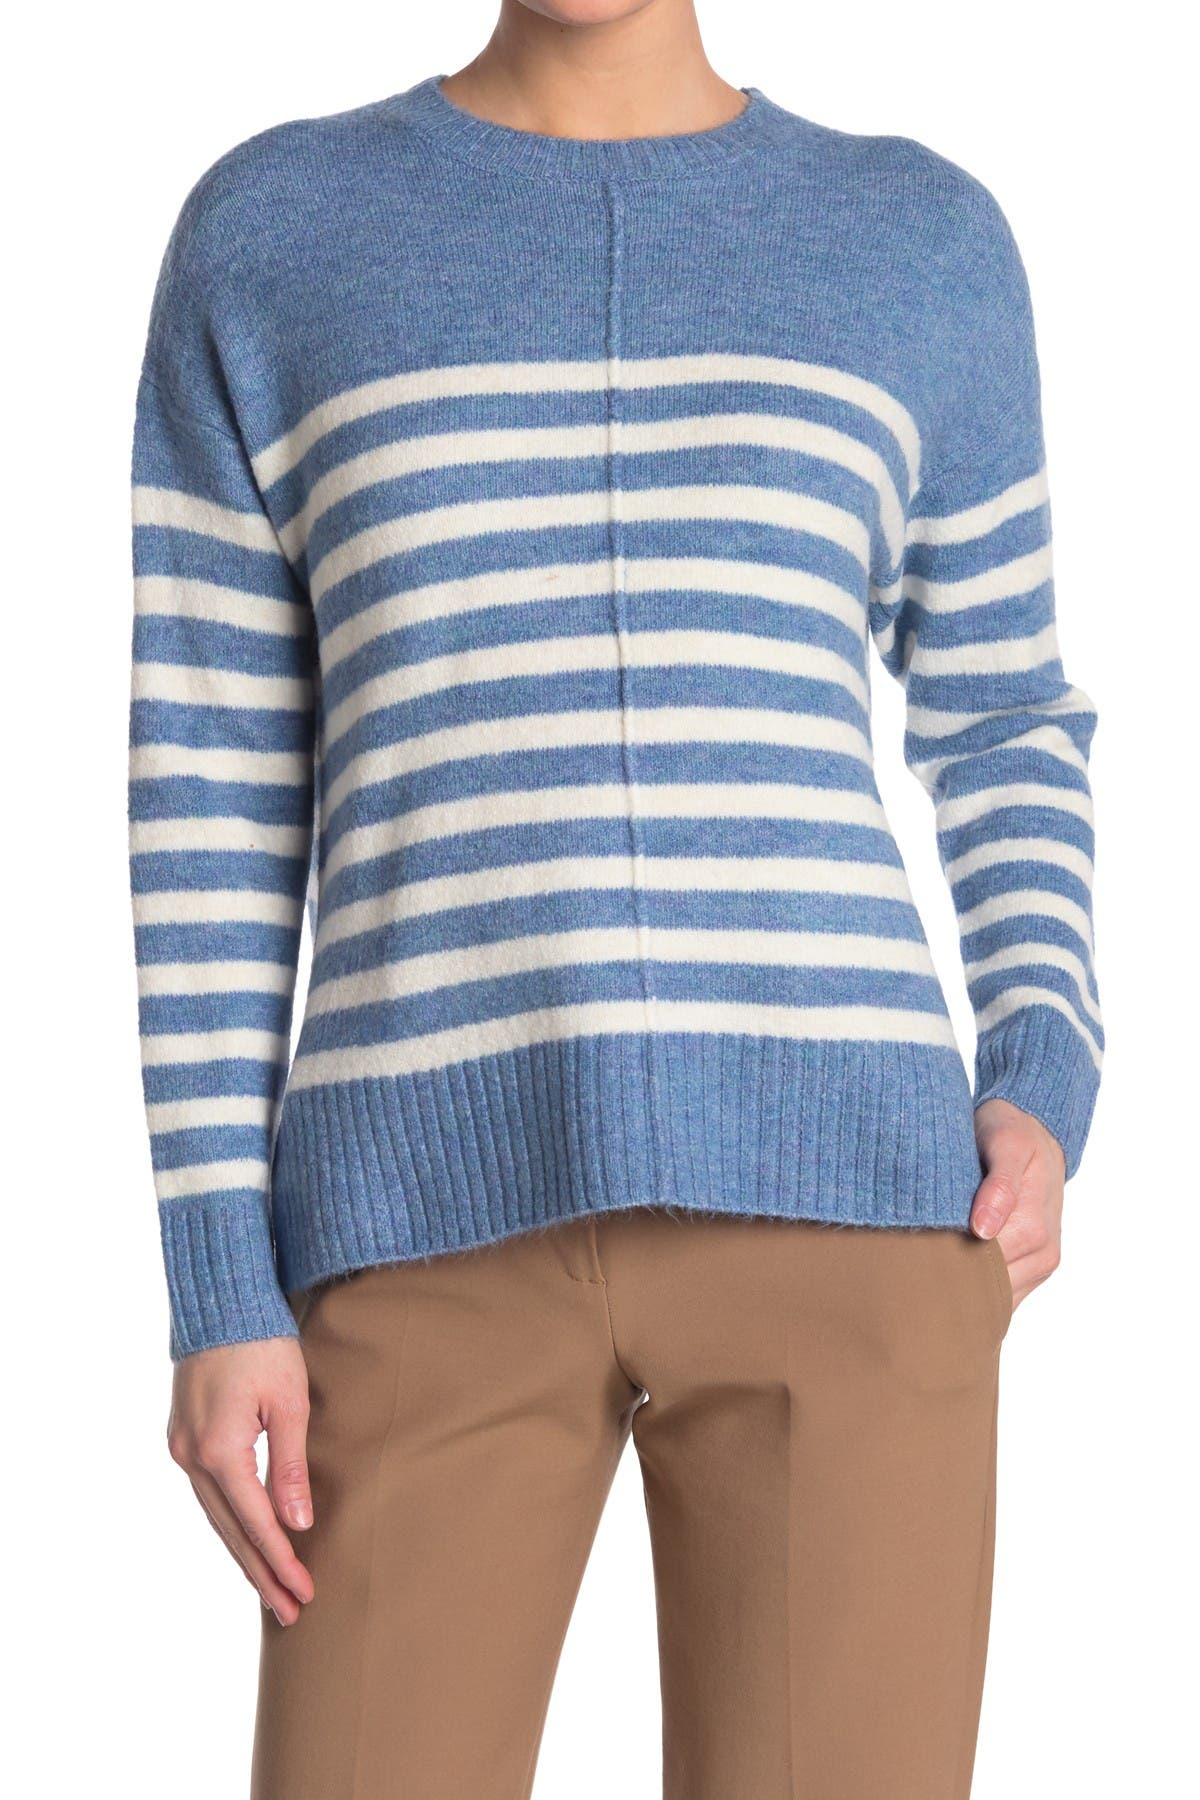 Image of CURRENT AIR Striped Crew Neck Pullover Sweater